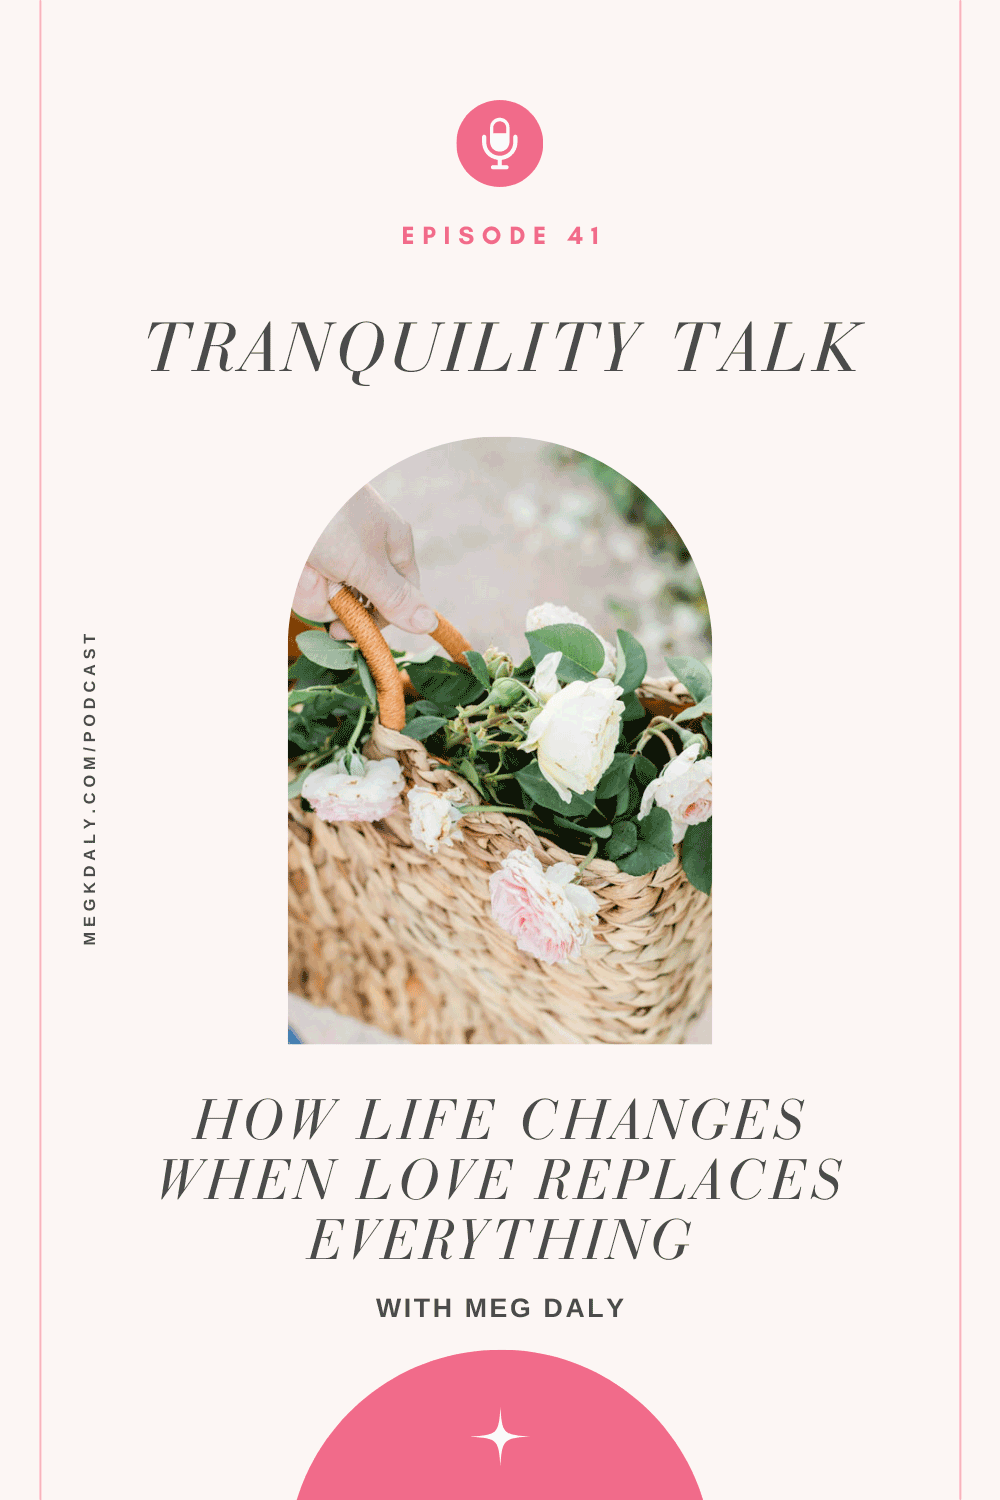 Tranquility Talk - How Life Changes When Love Replaces Everything